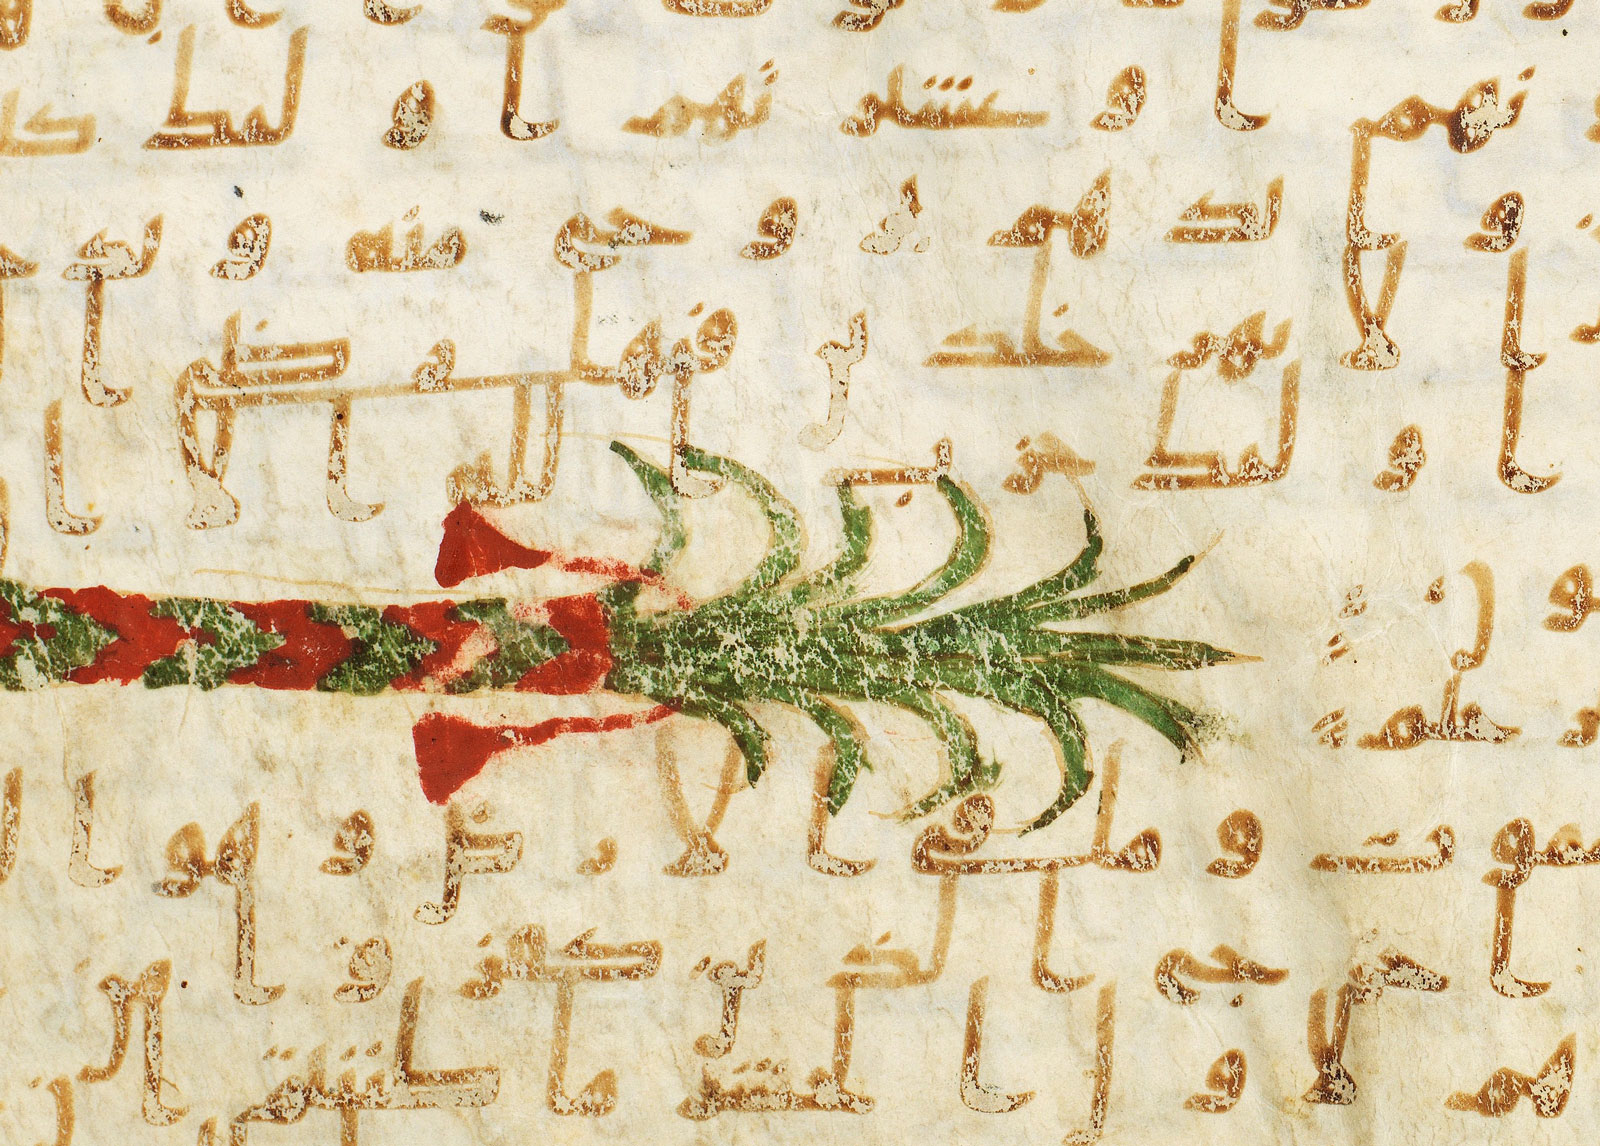 Detail from a Koran, Near East, Umayyad period, before 725